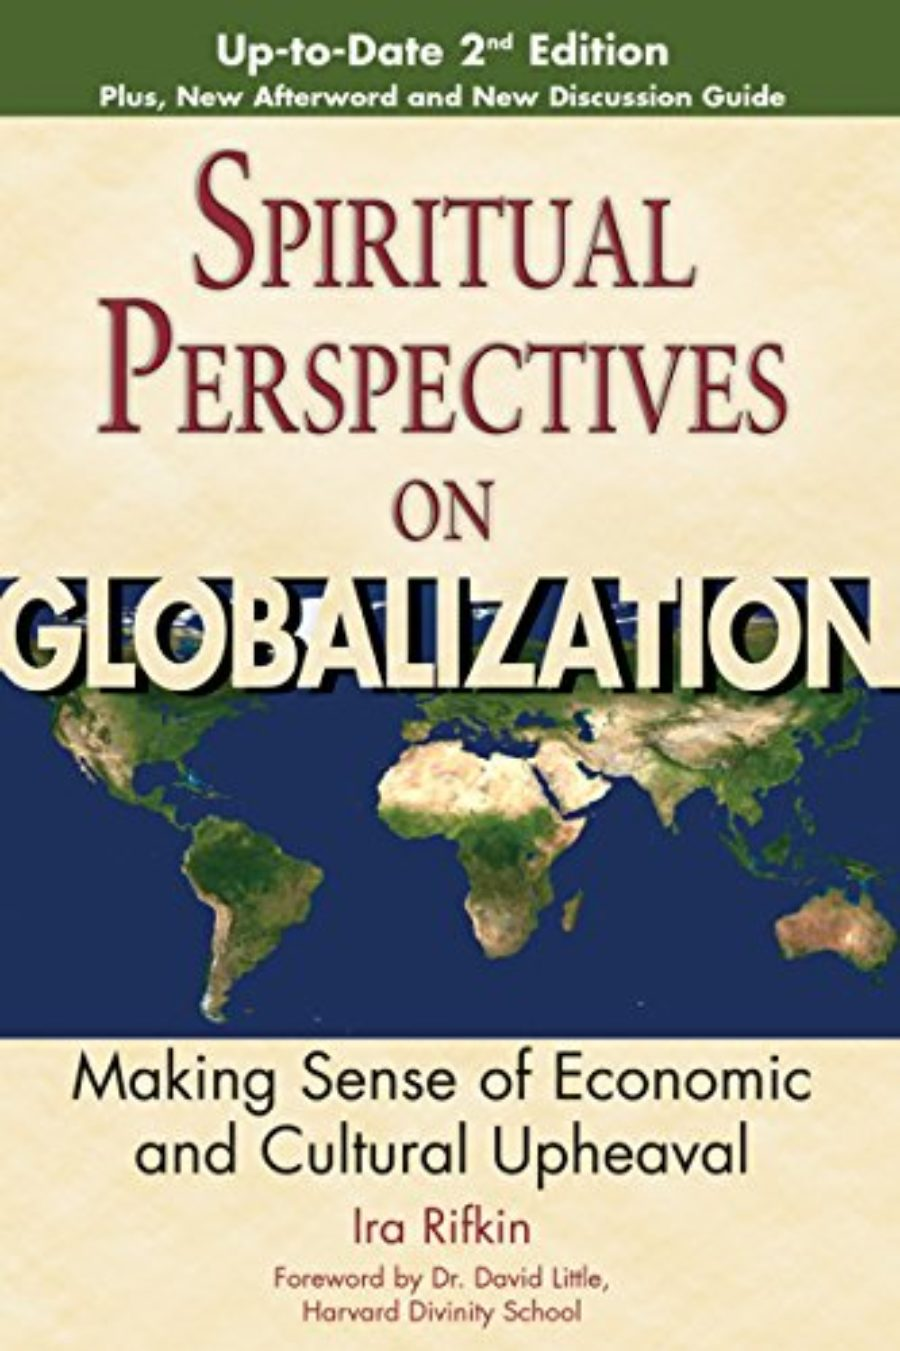 Cover of Spiritual Perspectives on Globalization (2nd Edition): Making Sense of Economic and Cultural Upheaval